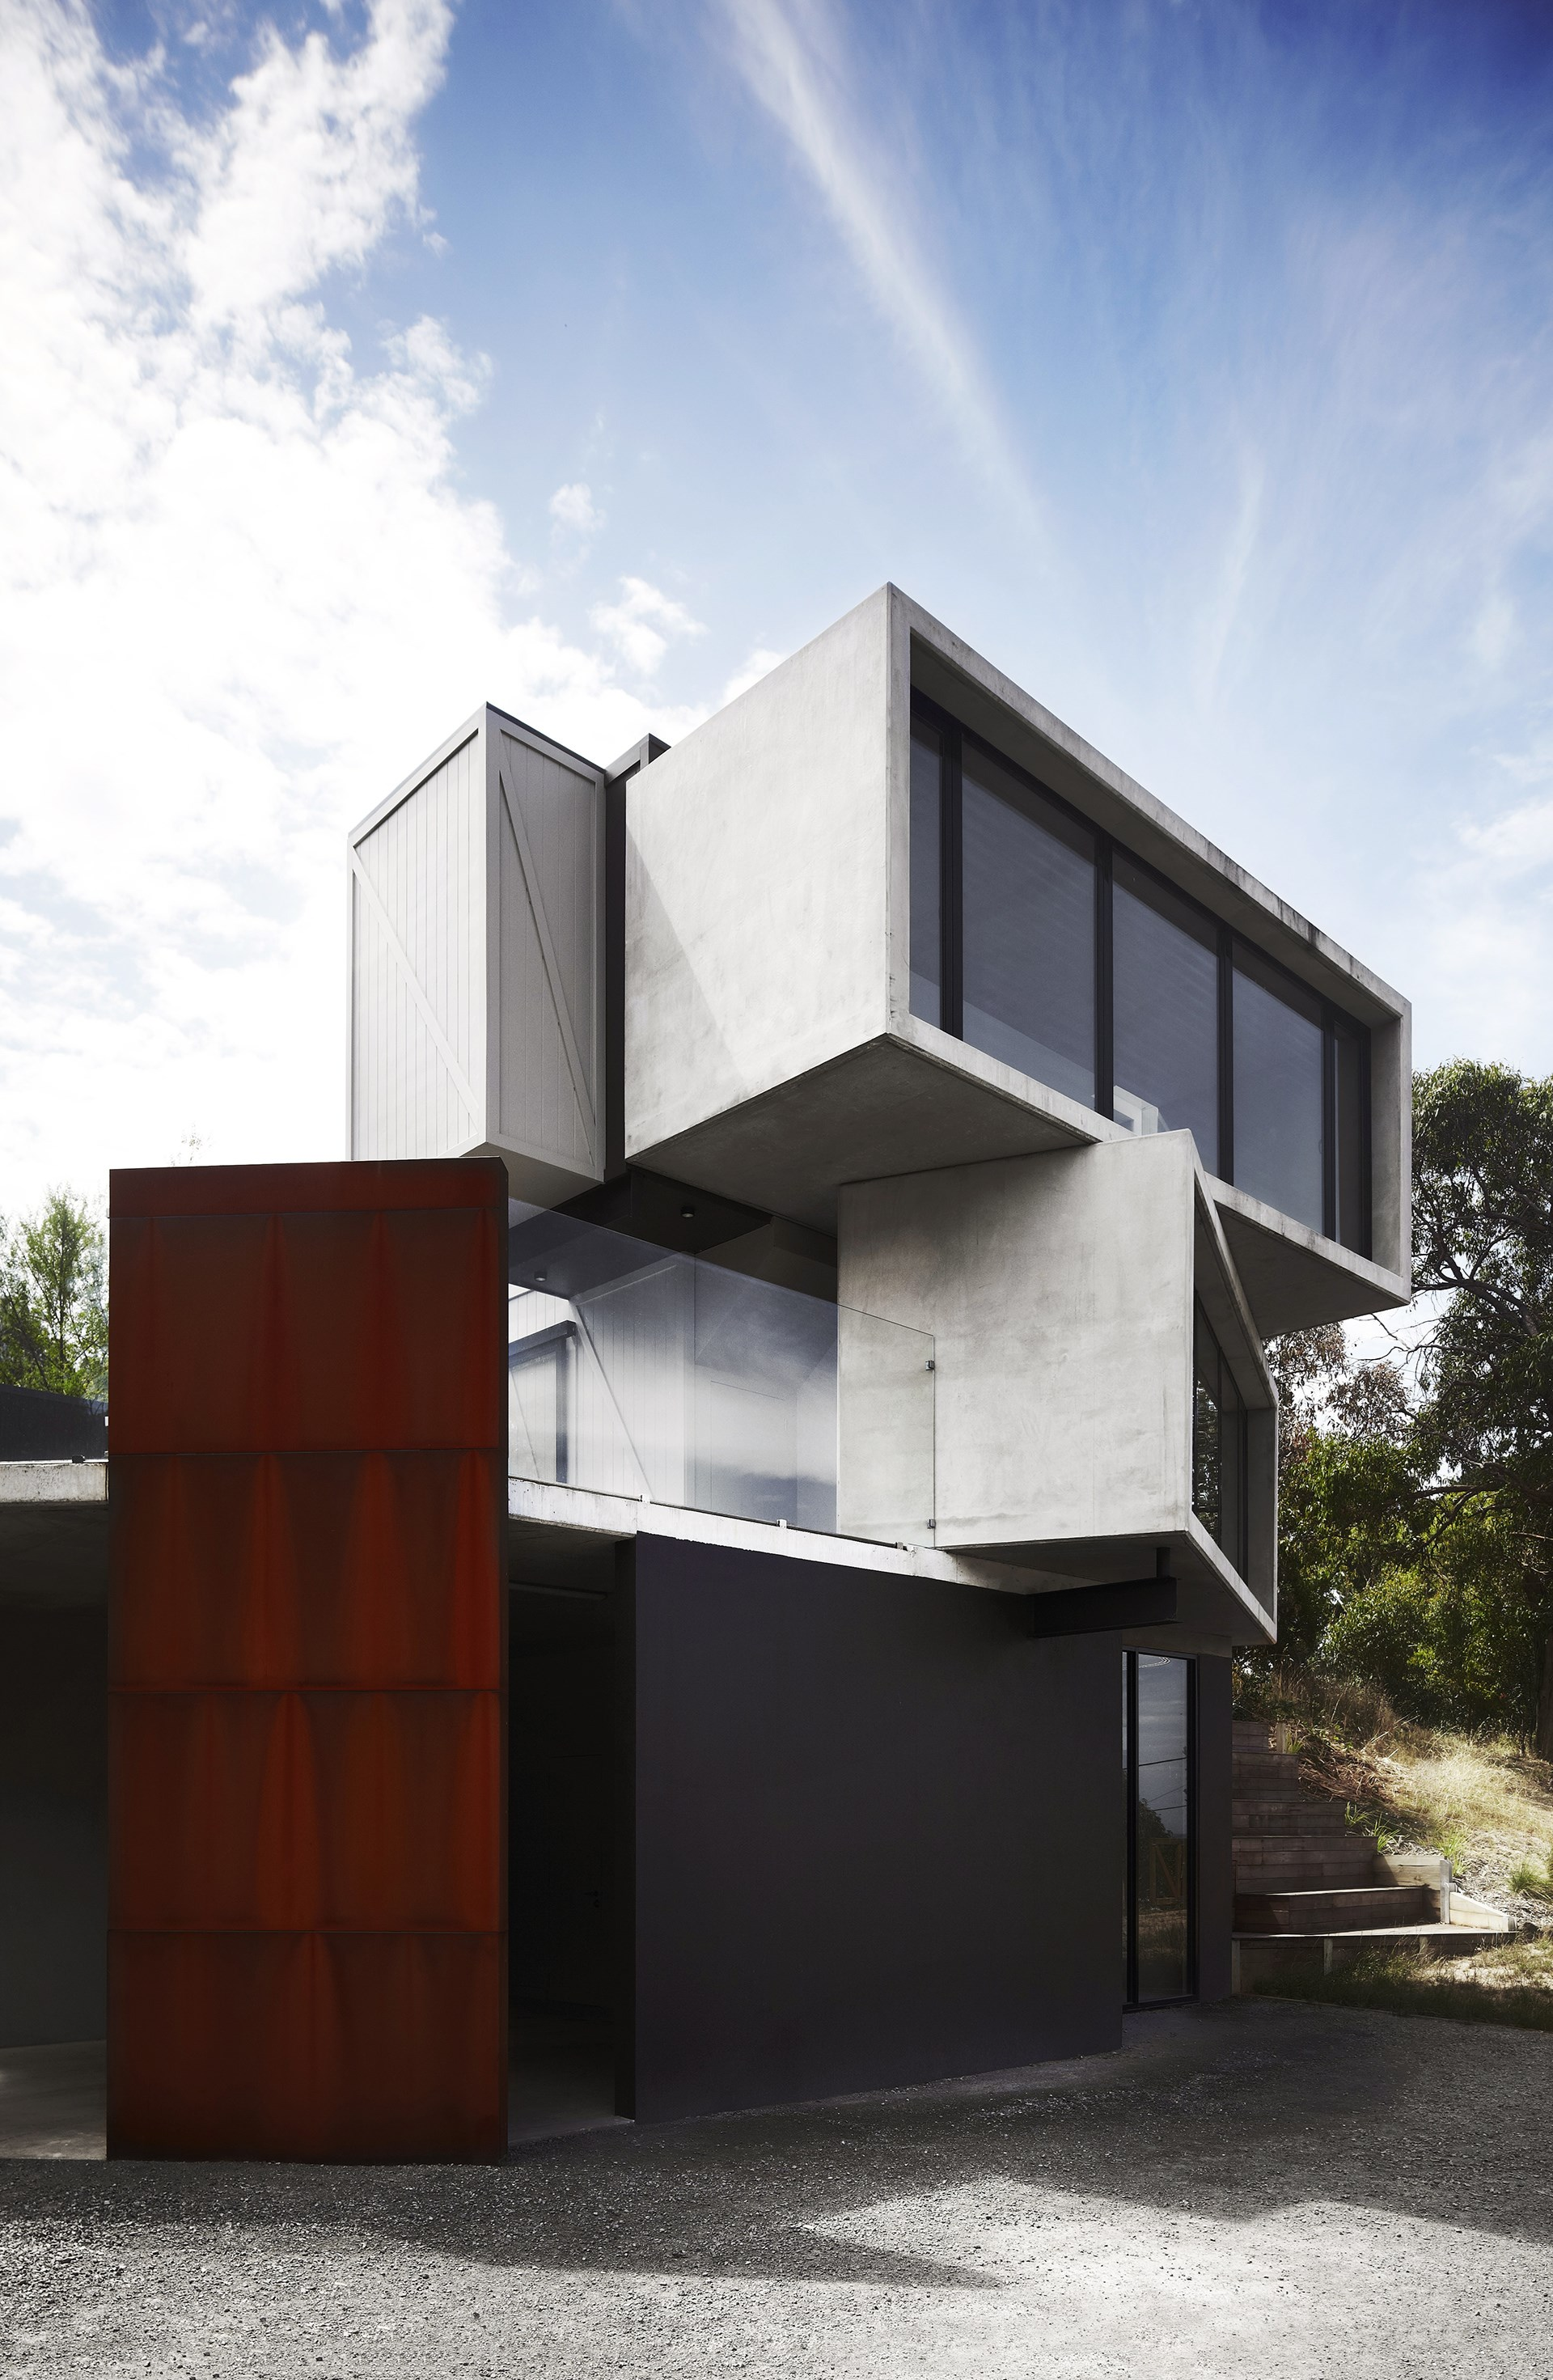 Find out more about this [concrete and steel pod house in Lorne](http://www.homestolove.com.au/concrete-and-steel-pod-house-in-lorne-1762). Photo: Sharyn Cairns / *Belle*